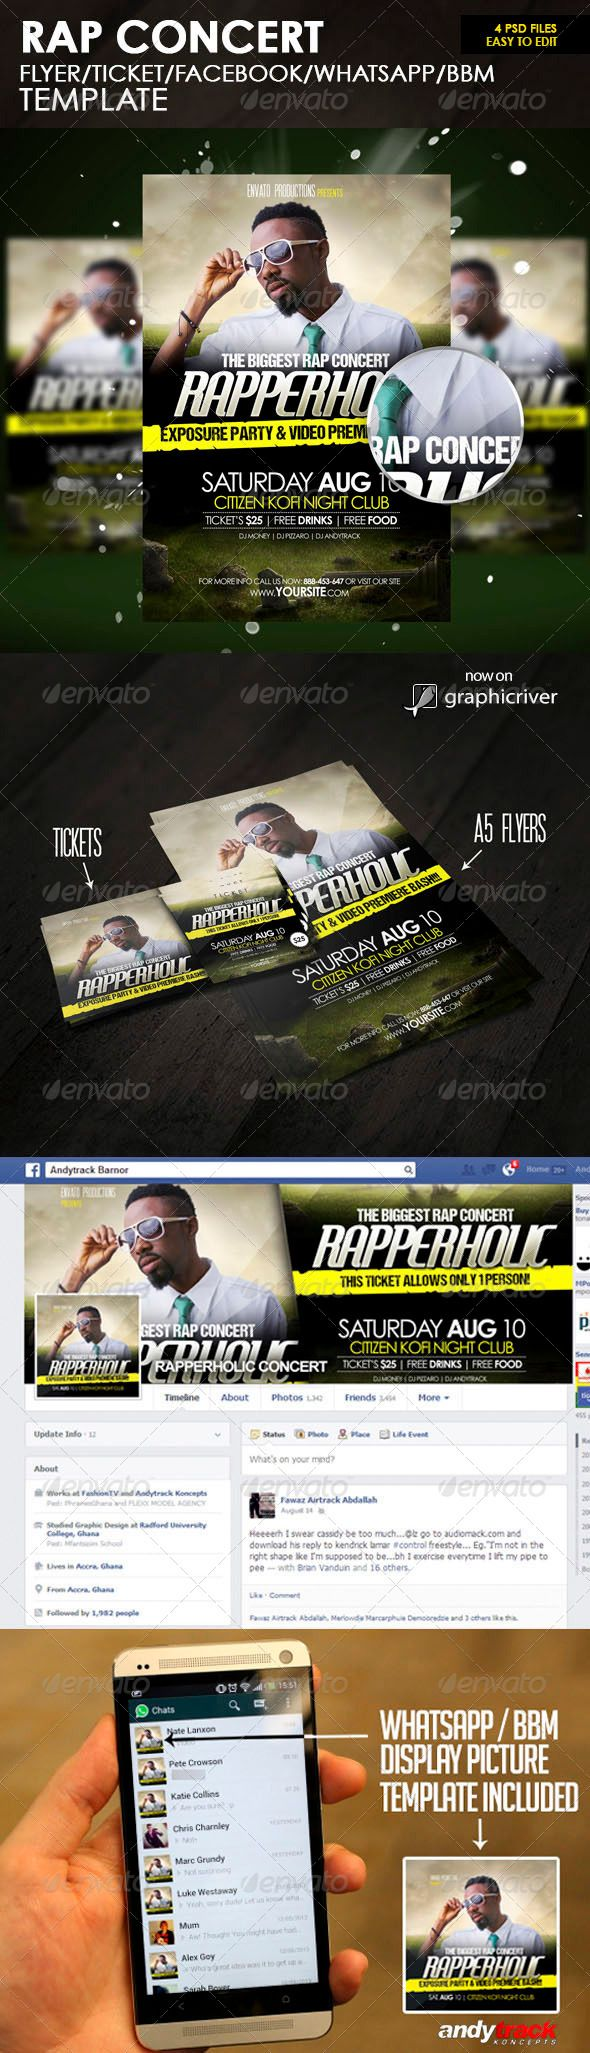 Realistic Graphic DOWNLOAD (.ai, .psd) :: http://jquery.re/pinterest-itmid-1005414984i.html ... Rap Concert Flyer Template ...  airforce, america, army, blue, concert, crazy, flag, flyer, flyer template, freedom, funky, holiday, july, may, memorial day, party, patriot, patriotic, rap, red, salute, school, sexy, soldiers, stars, template  ... Realistic Photo Graphic Print Obejct Business Web Elements Illustration Design Templates ... DOWNLOAD…